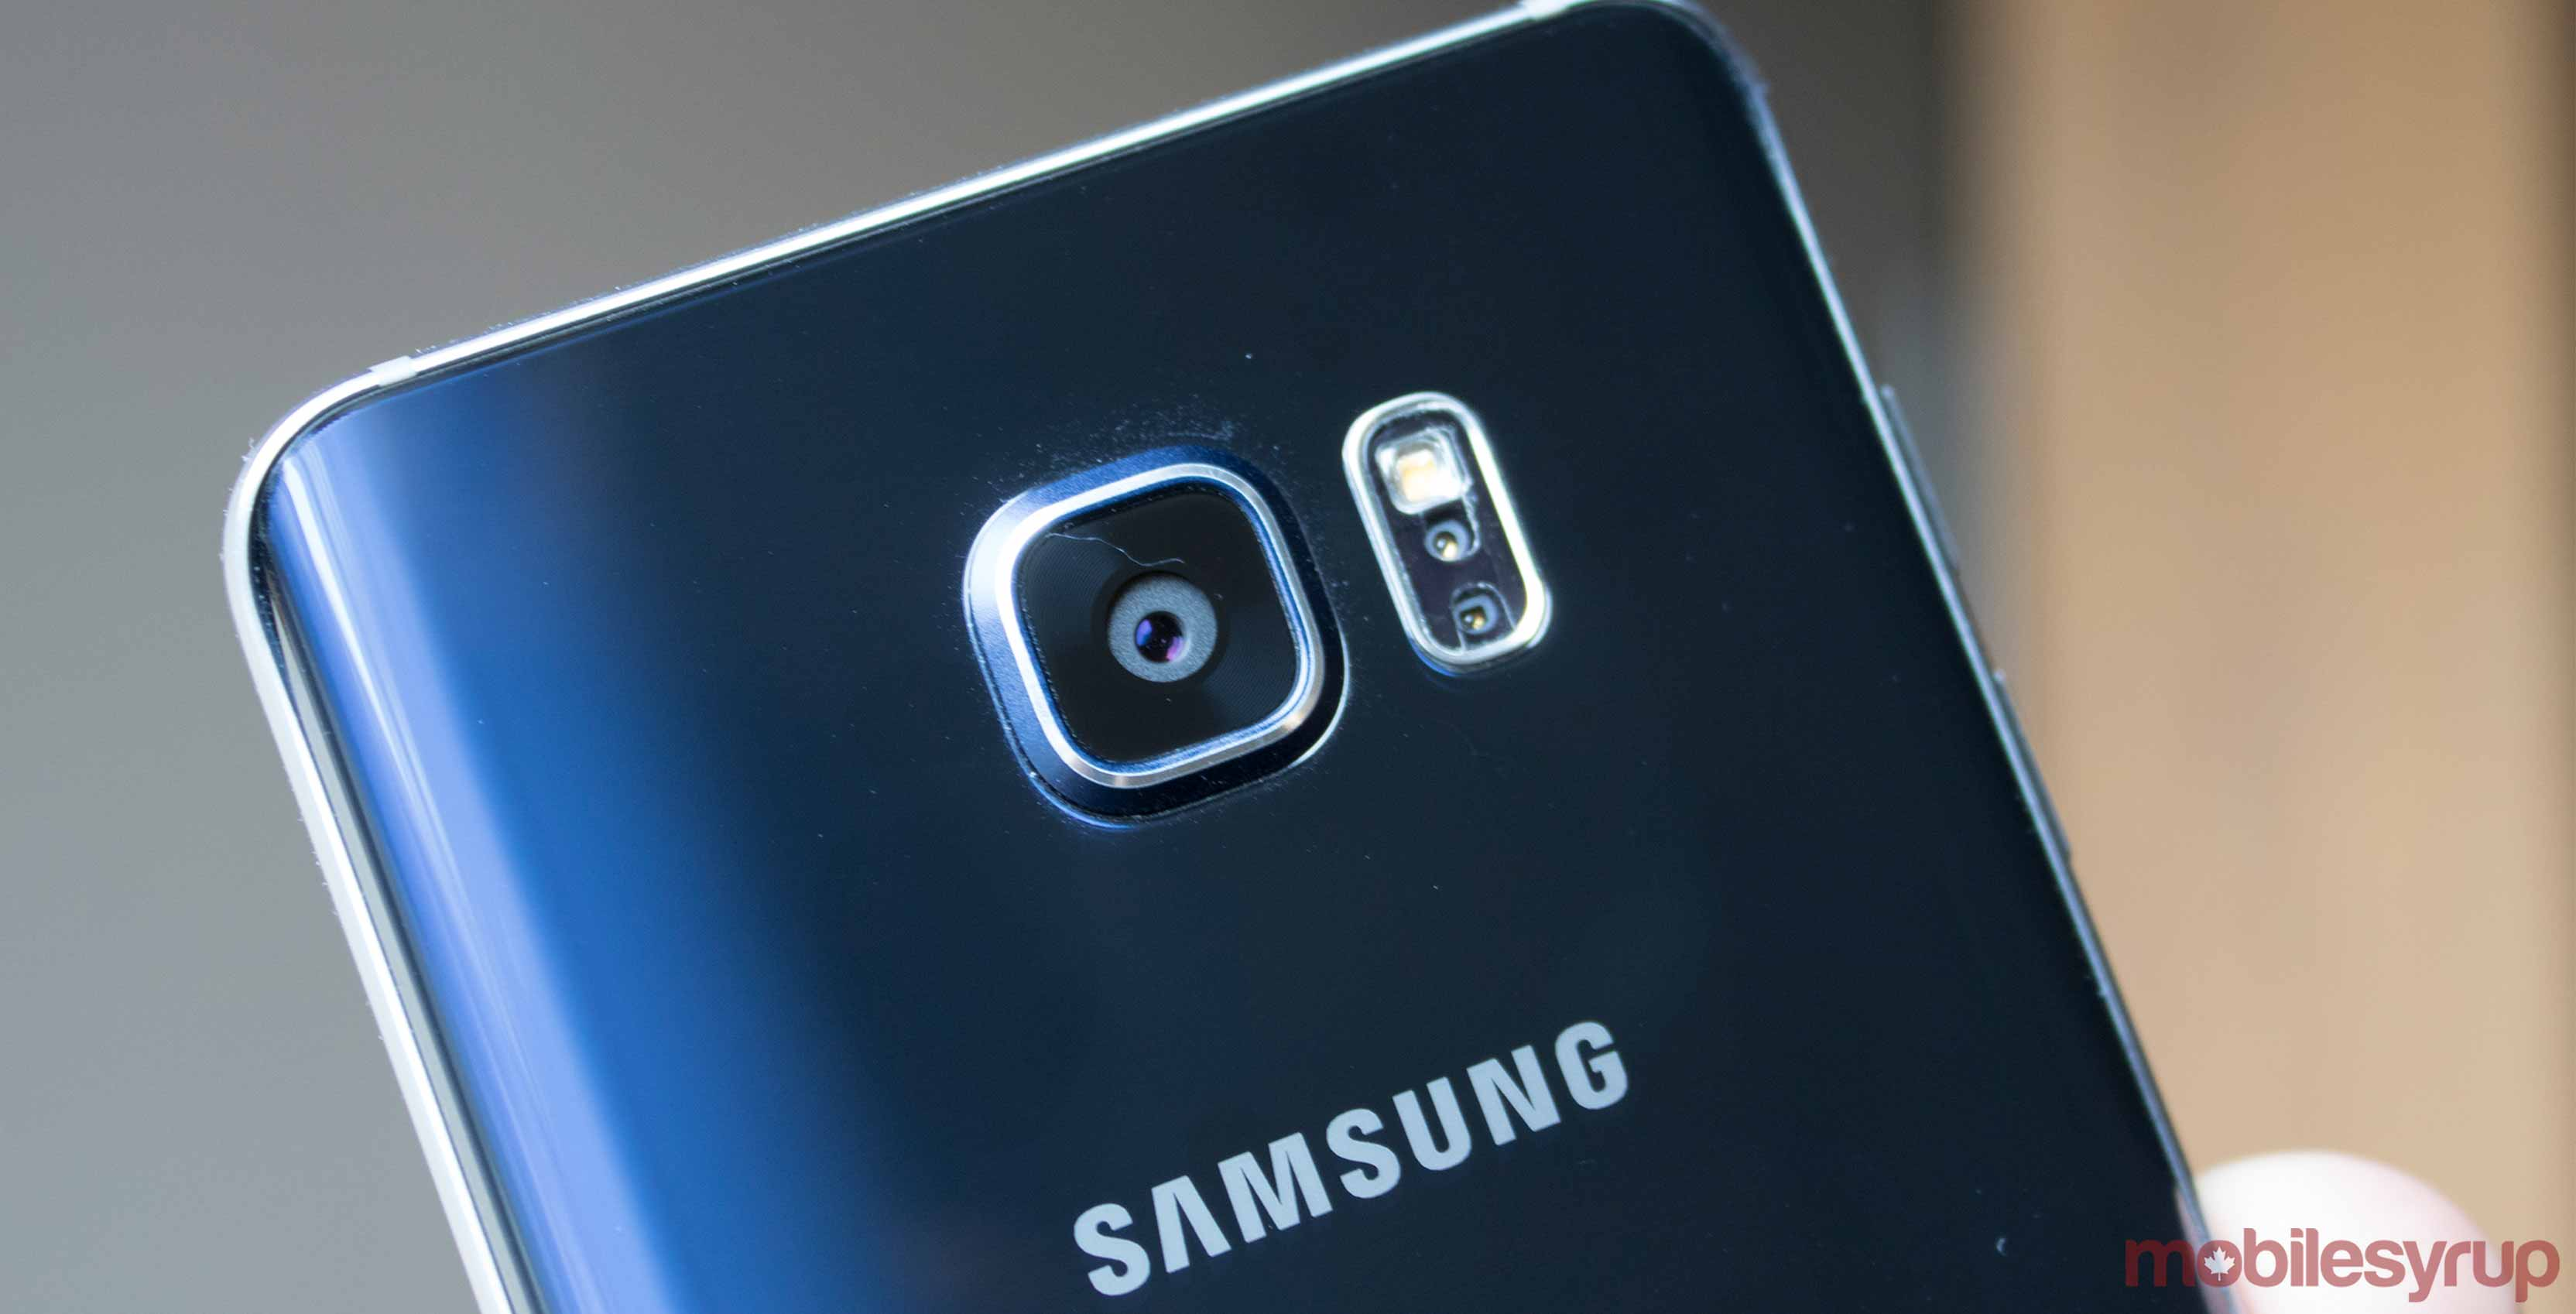 Samsung S7 will not look like the Galaxy S8